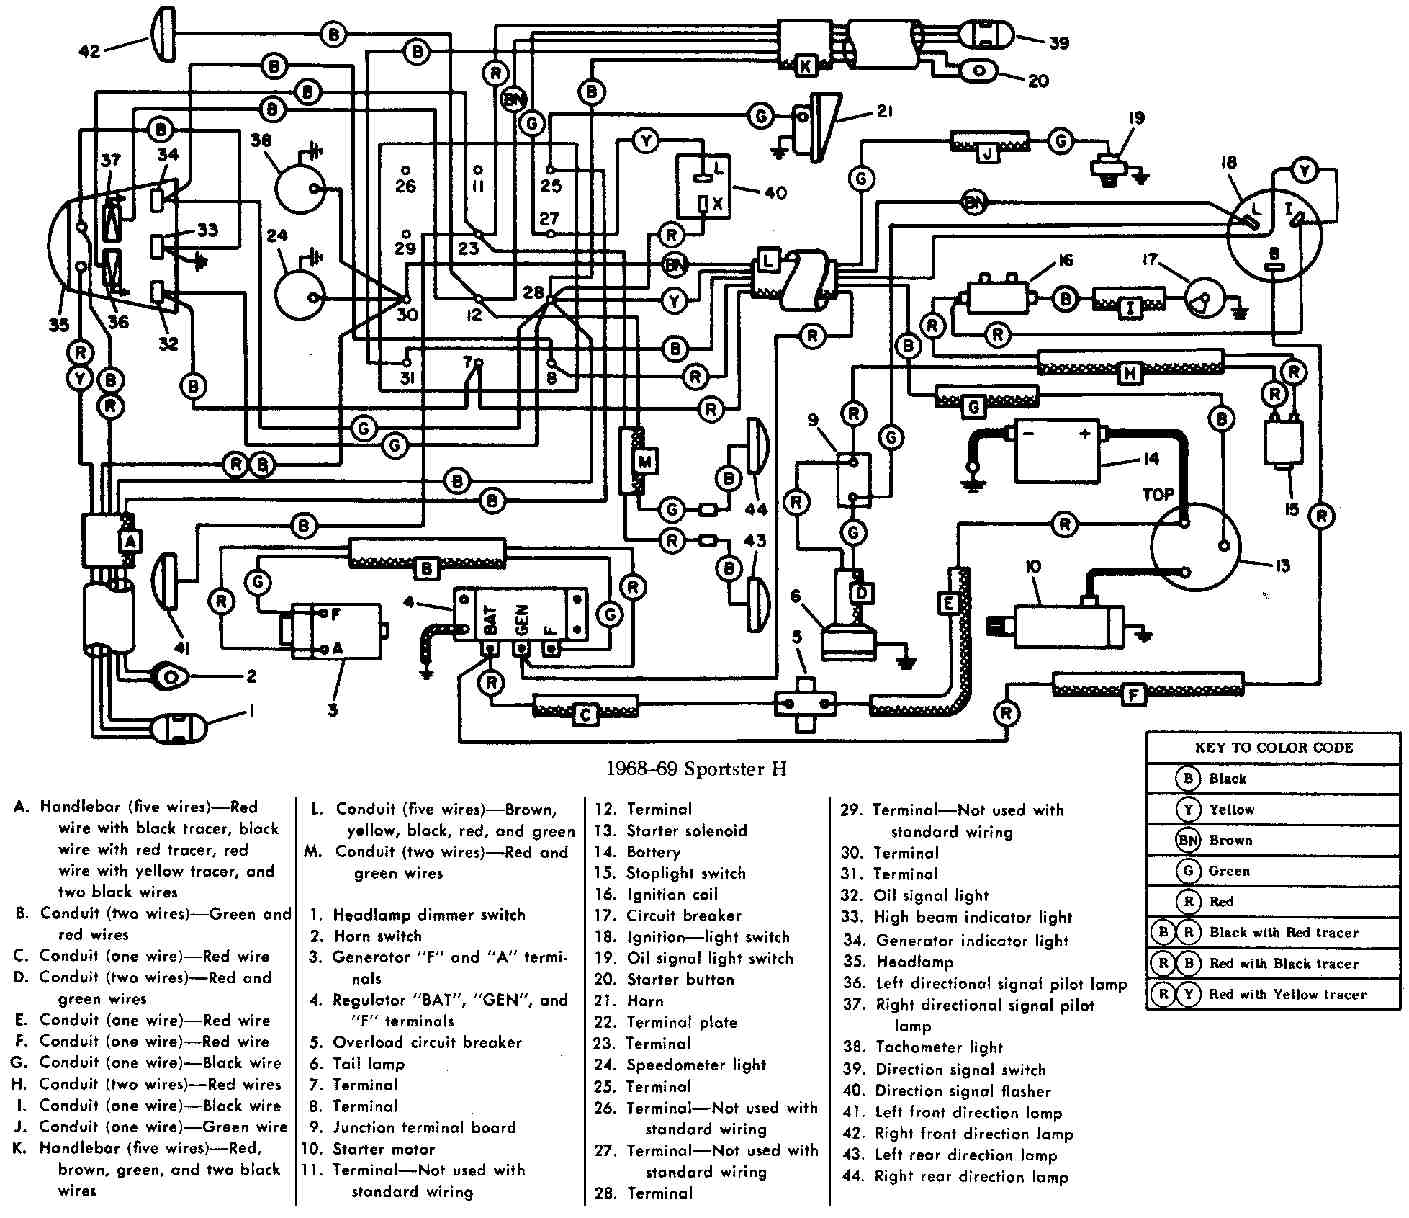 Harley Davidson Sportster Electrical Wiring Diagram on 1990 Heritage Softail Wiring Diagram